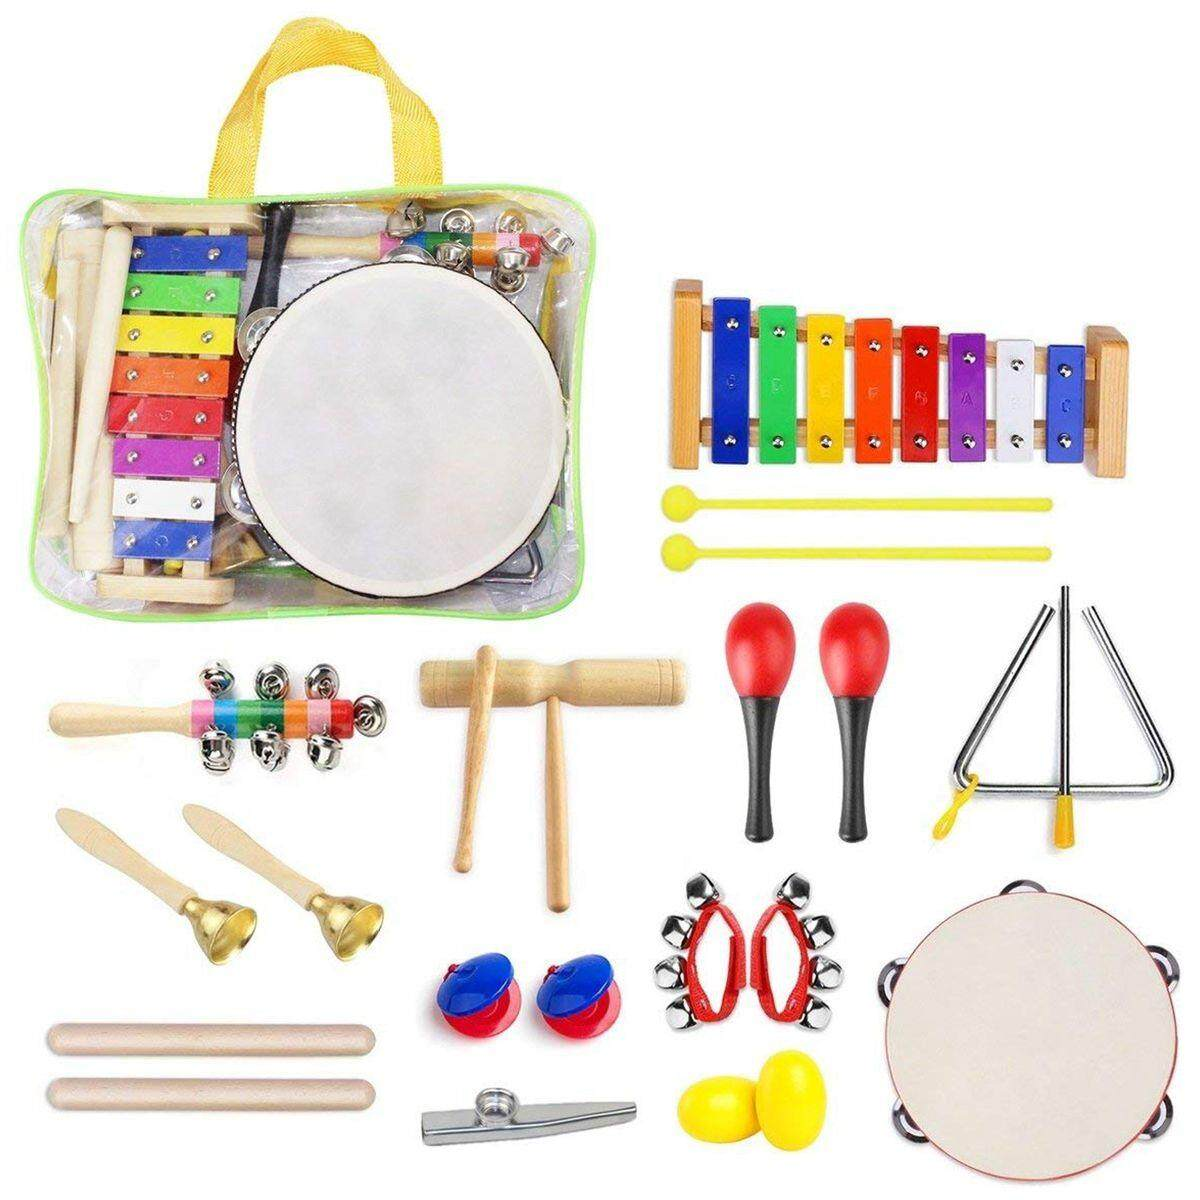 22 Pcs Toddler Musical Instruments Set Percussion Instrument Toys Toddler Musical Toys Set Rhythm Band Set Birthday Gift For Toddlers Kids Preschool Children With Storage Bag By Ycitc.